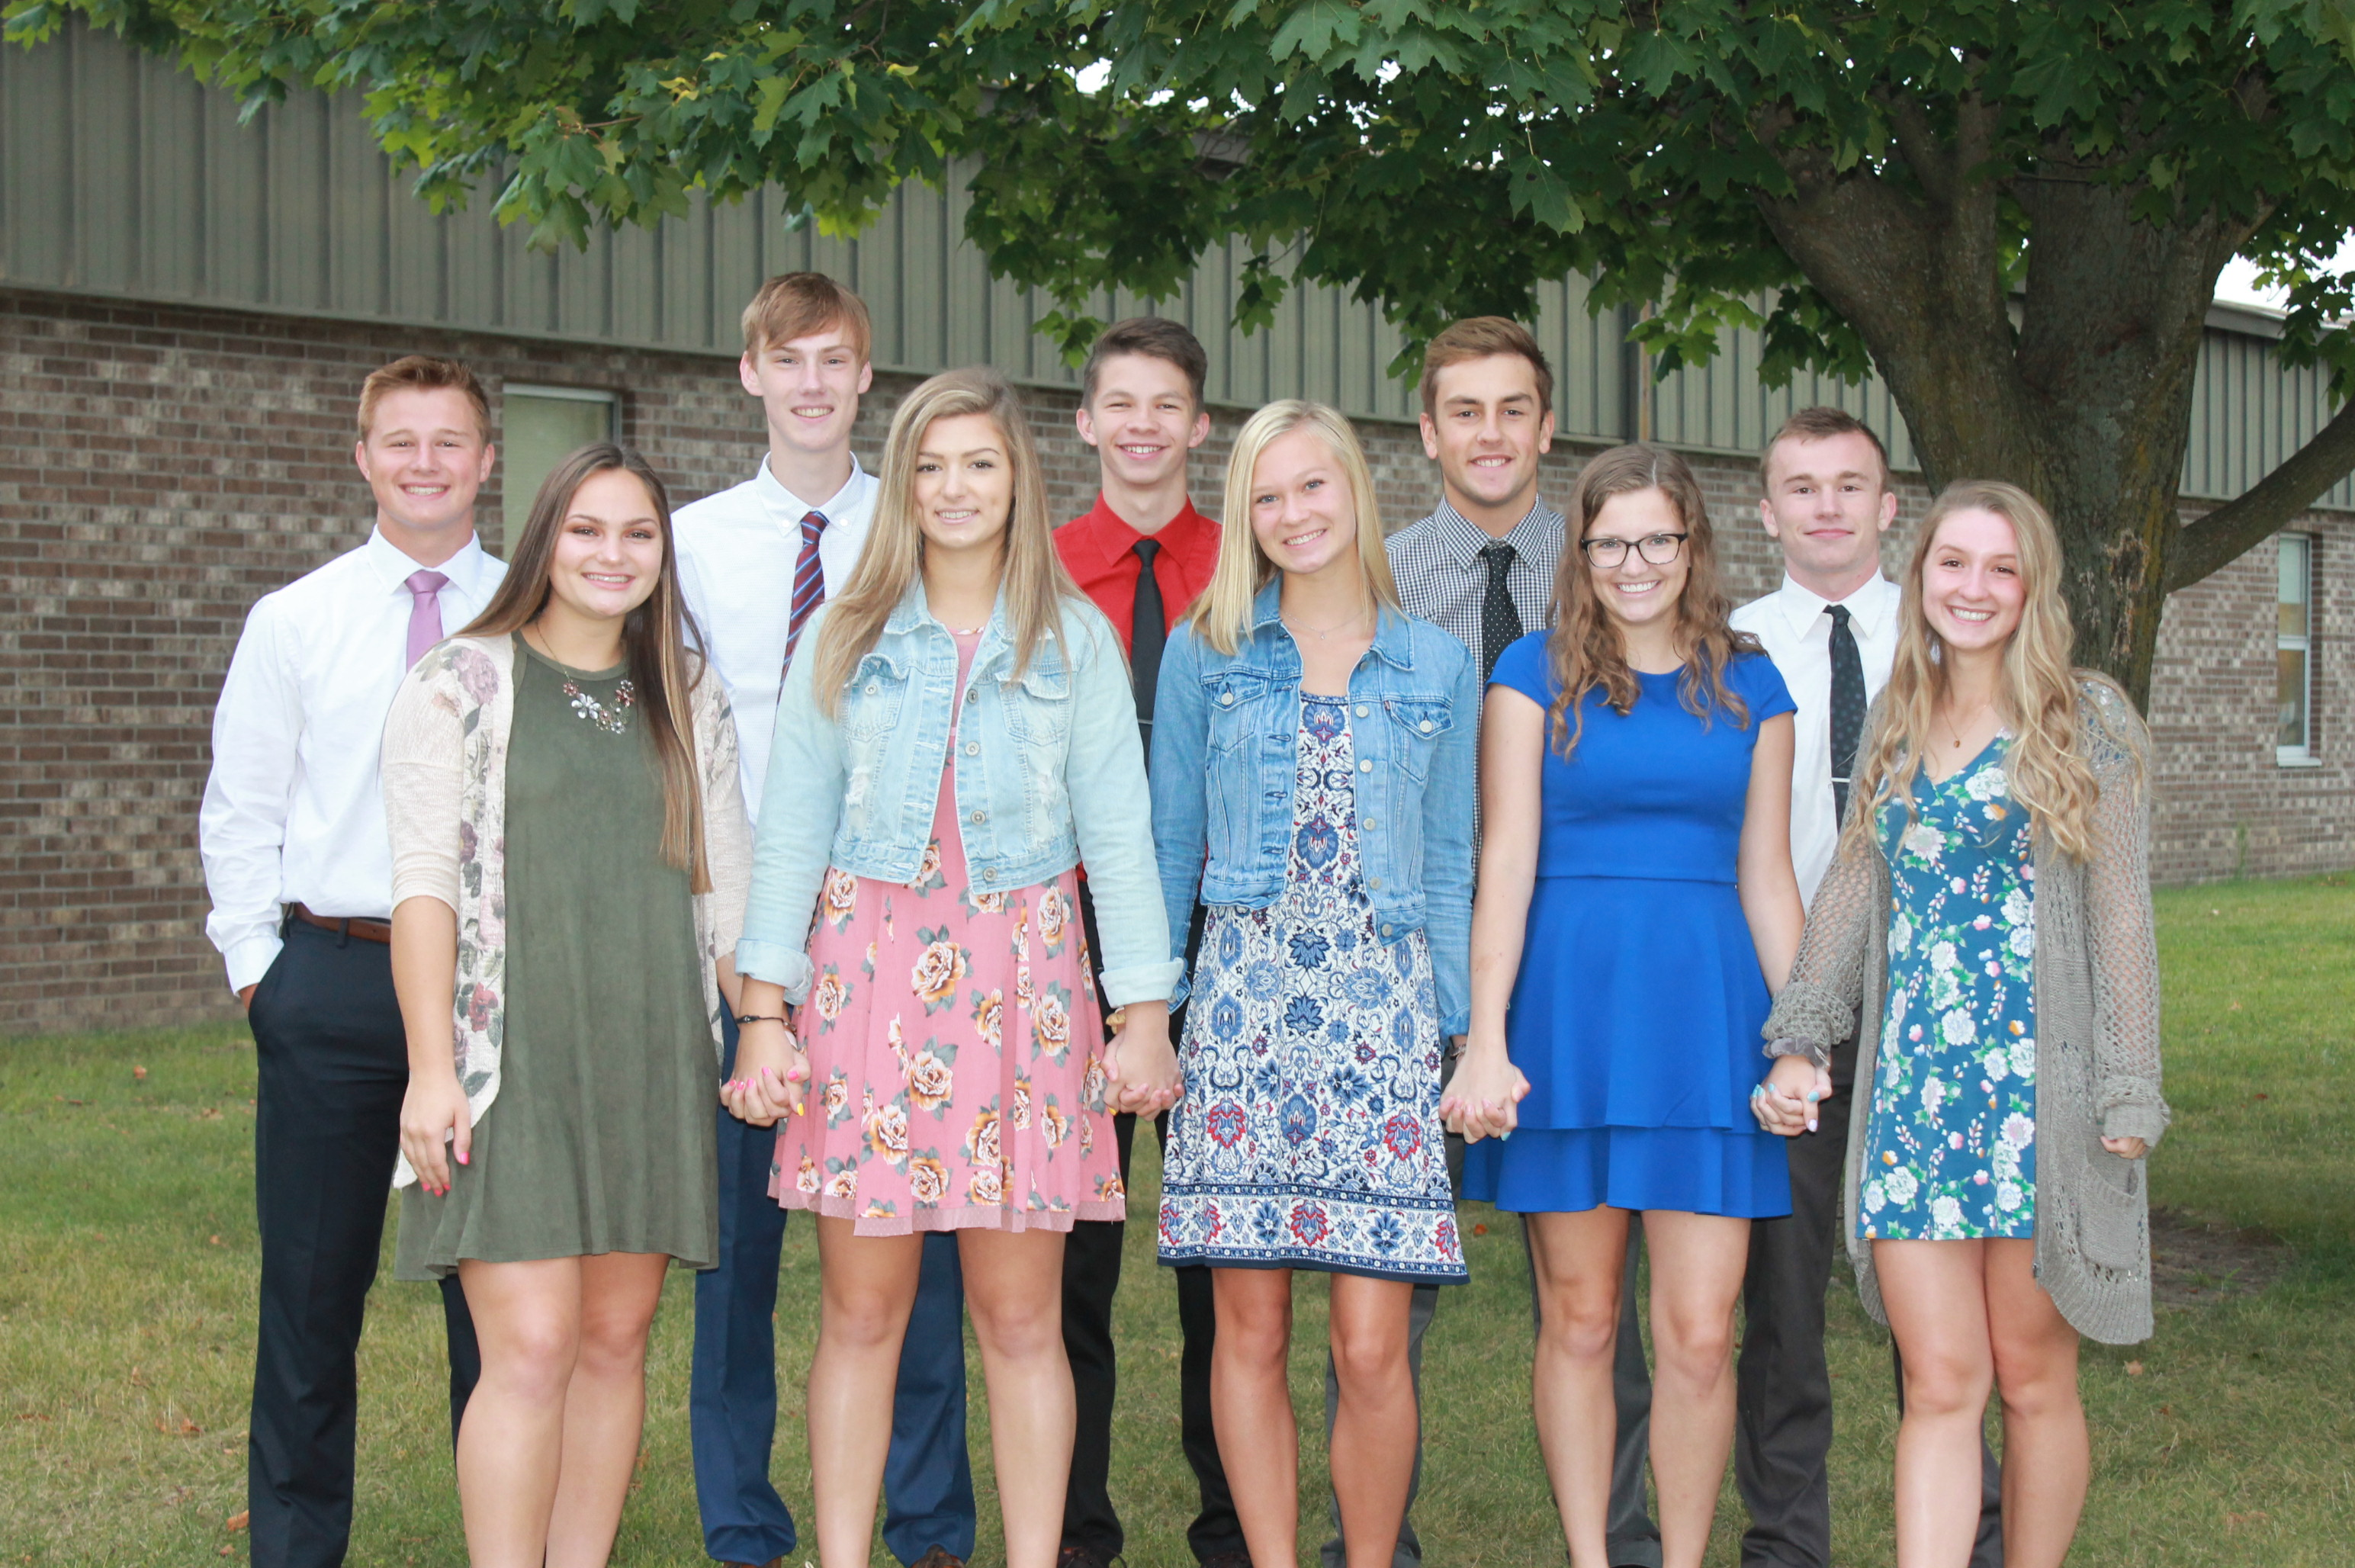 members of the homecoming court